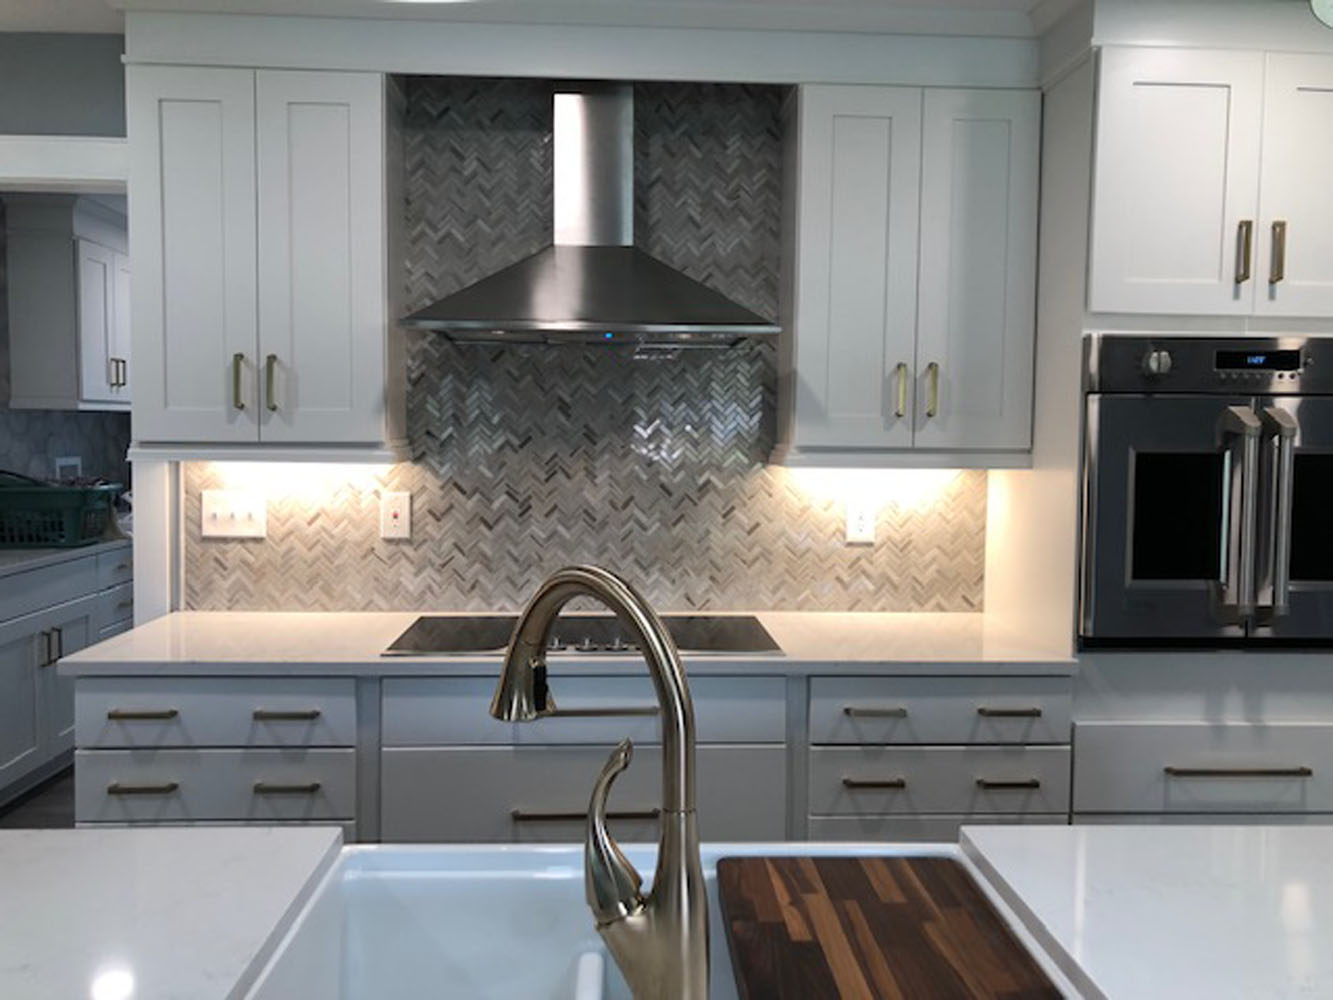 North Knoxville Kitchen and addition